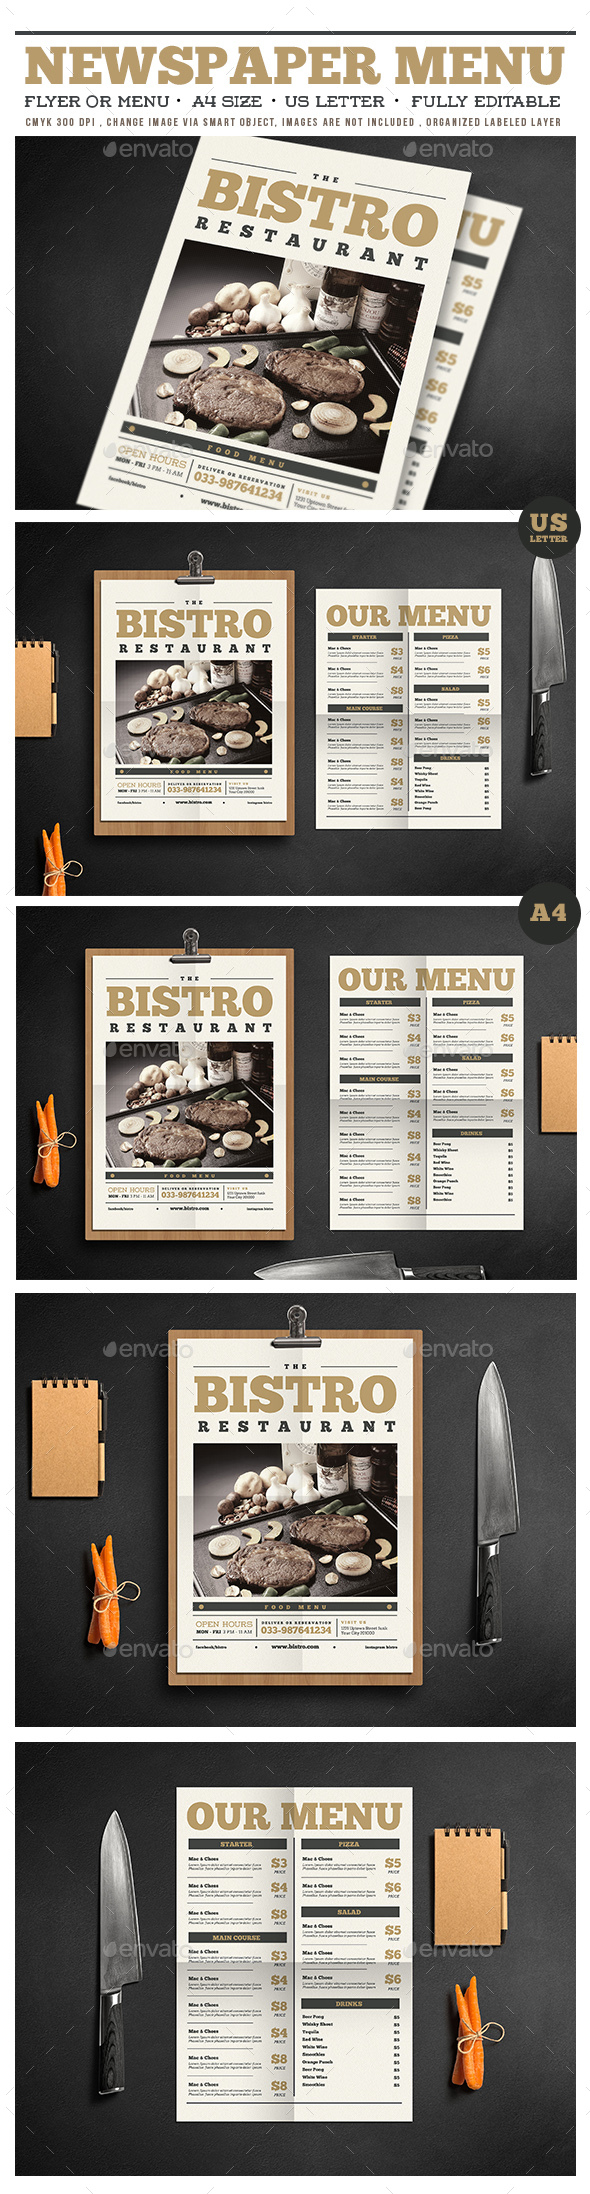 Newspaper Menu Vol 02 - Restaurant Flyers